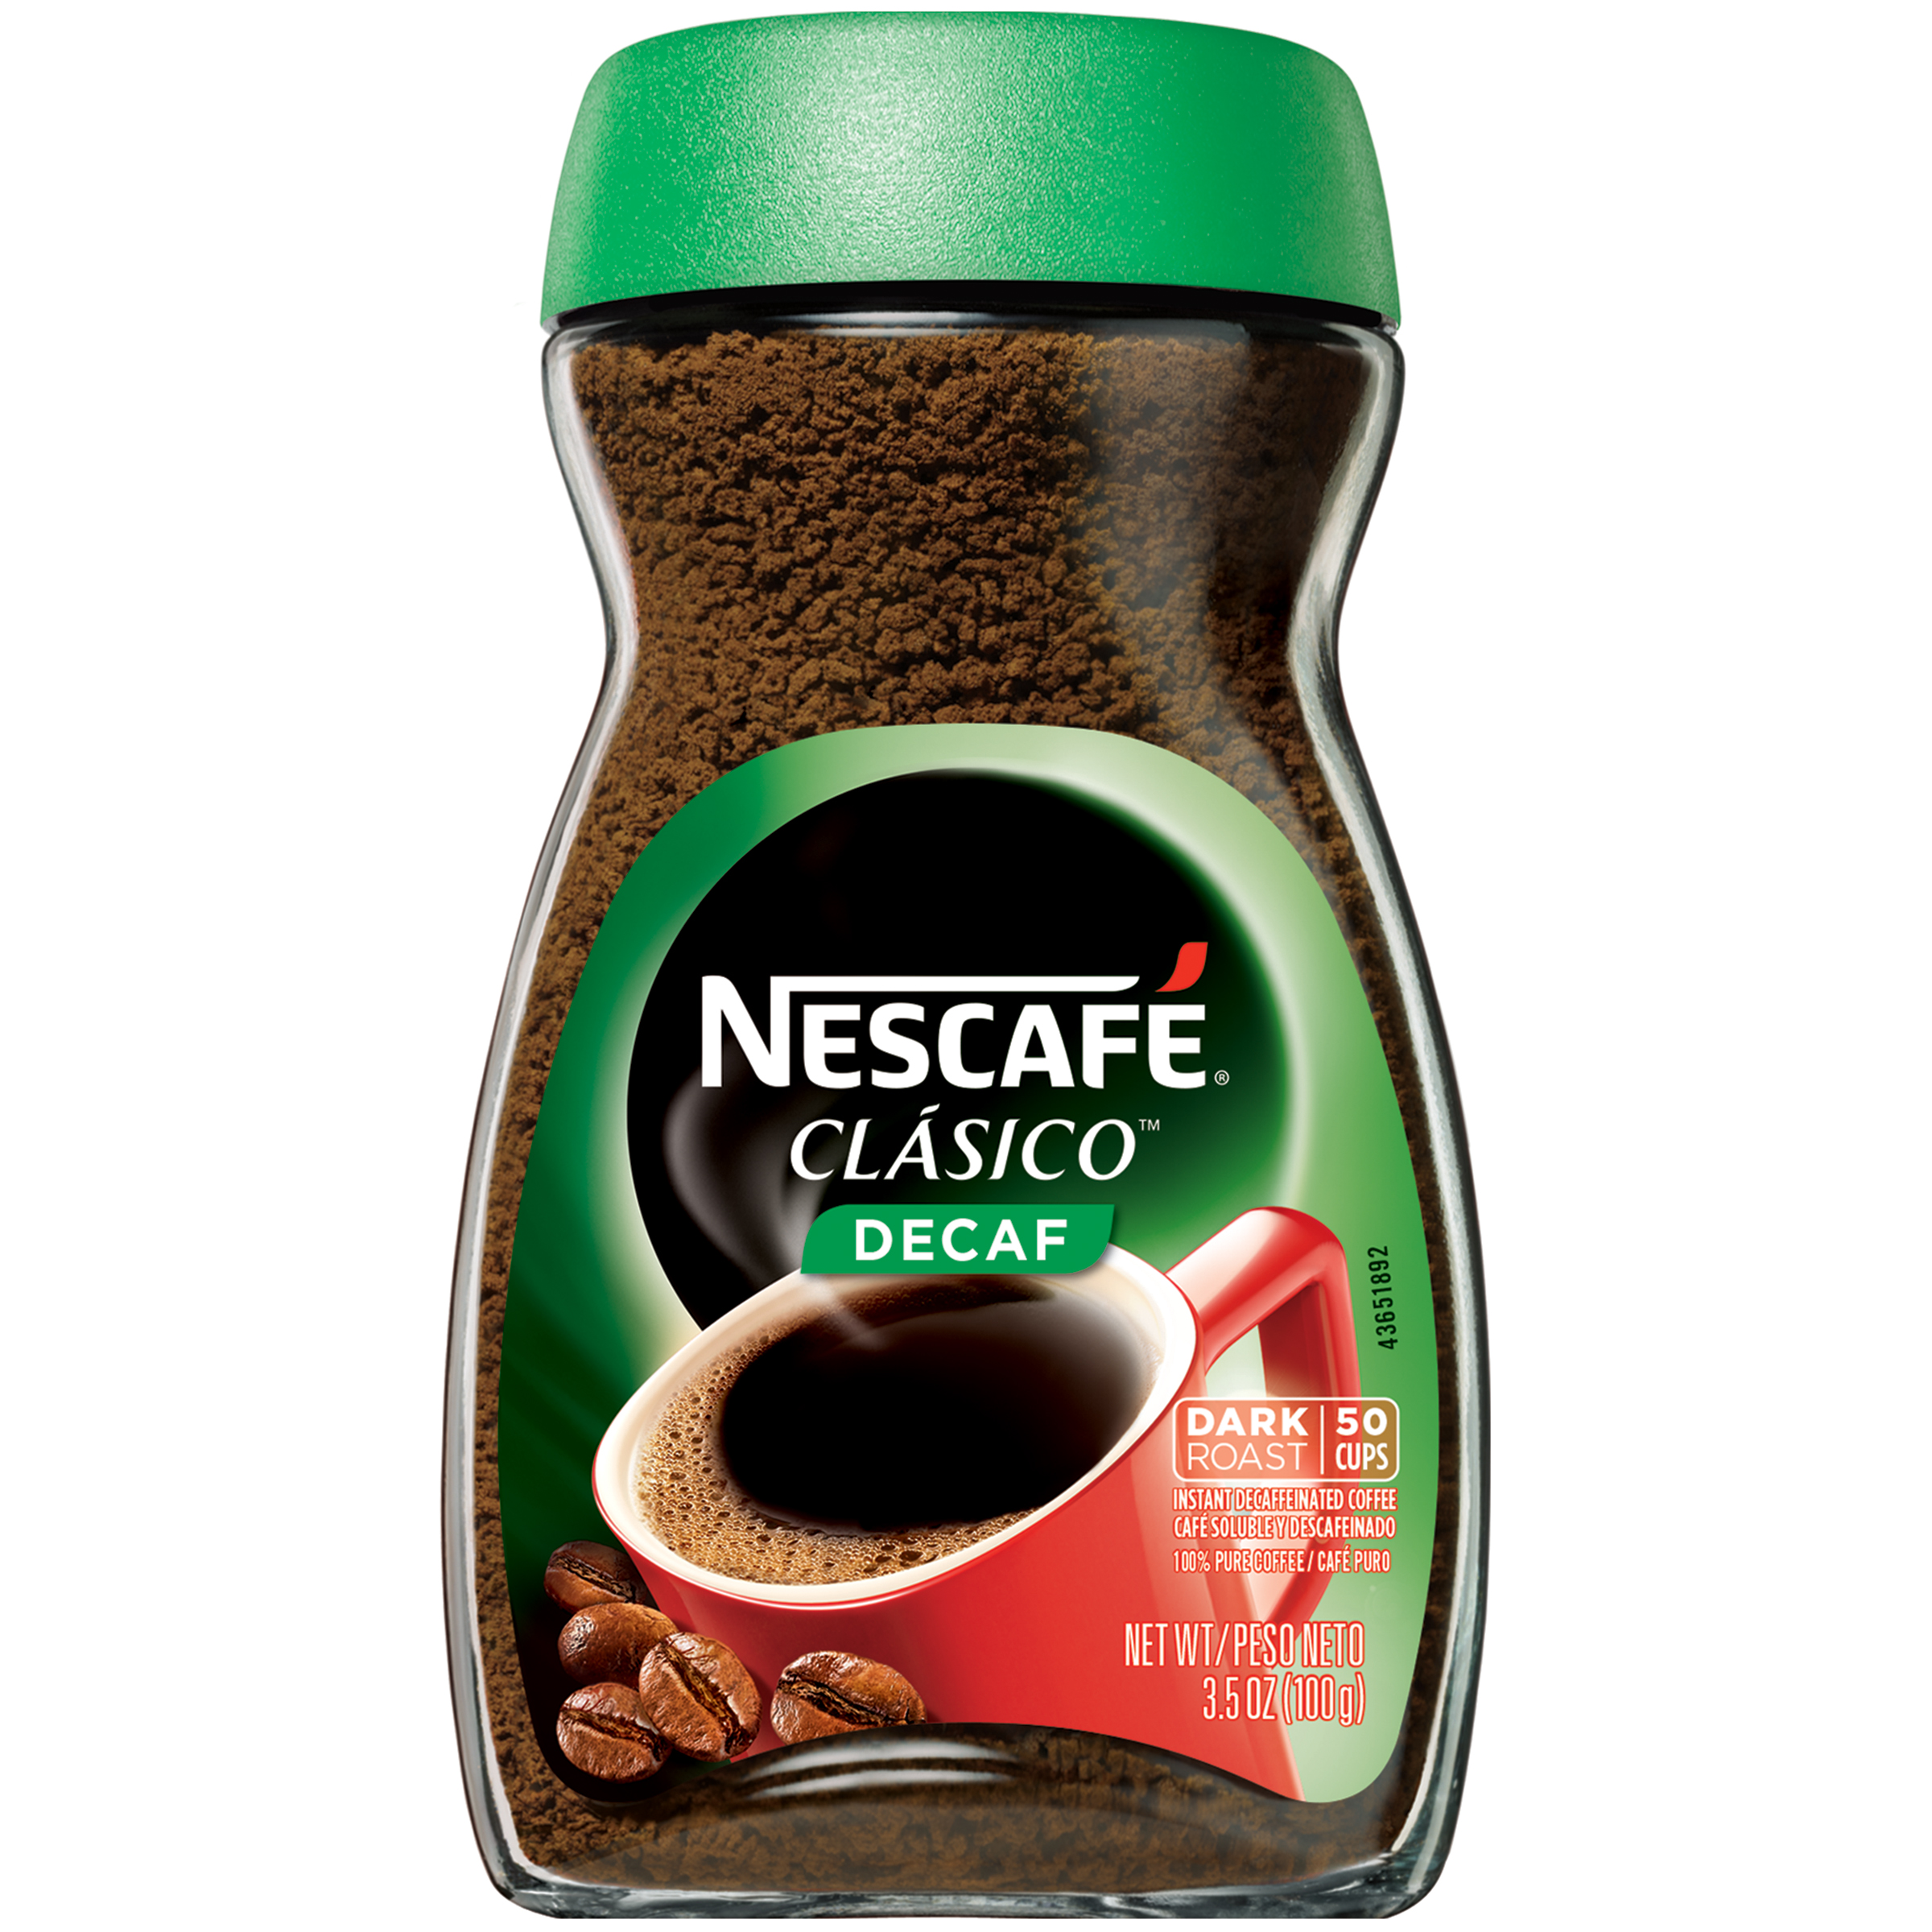 NESCAFE CLASICO Decaf Instant Coffee 3.5 oz. Jar